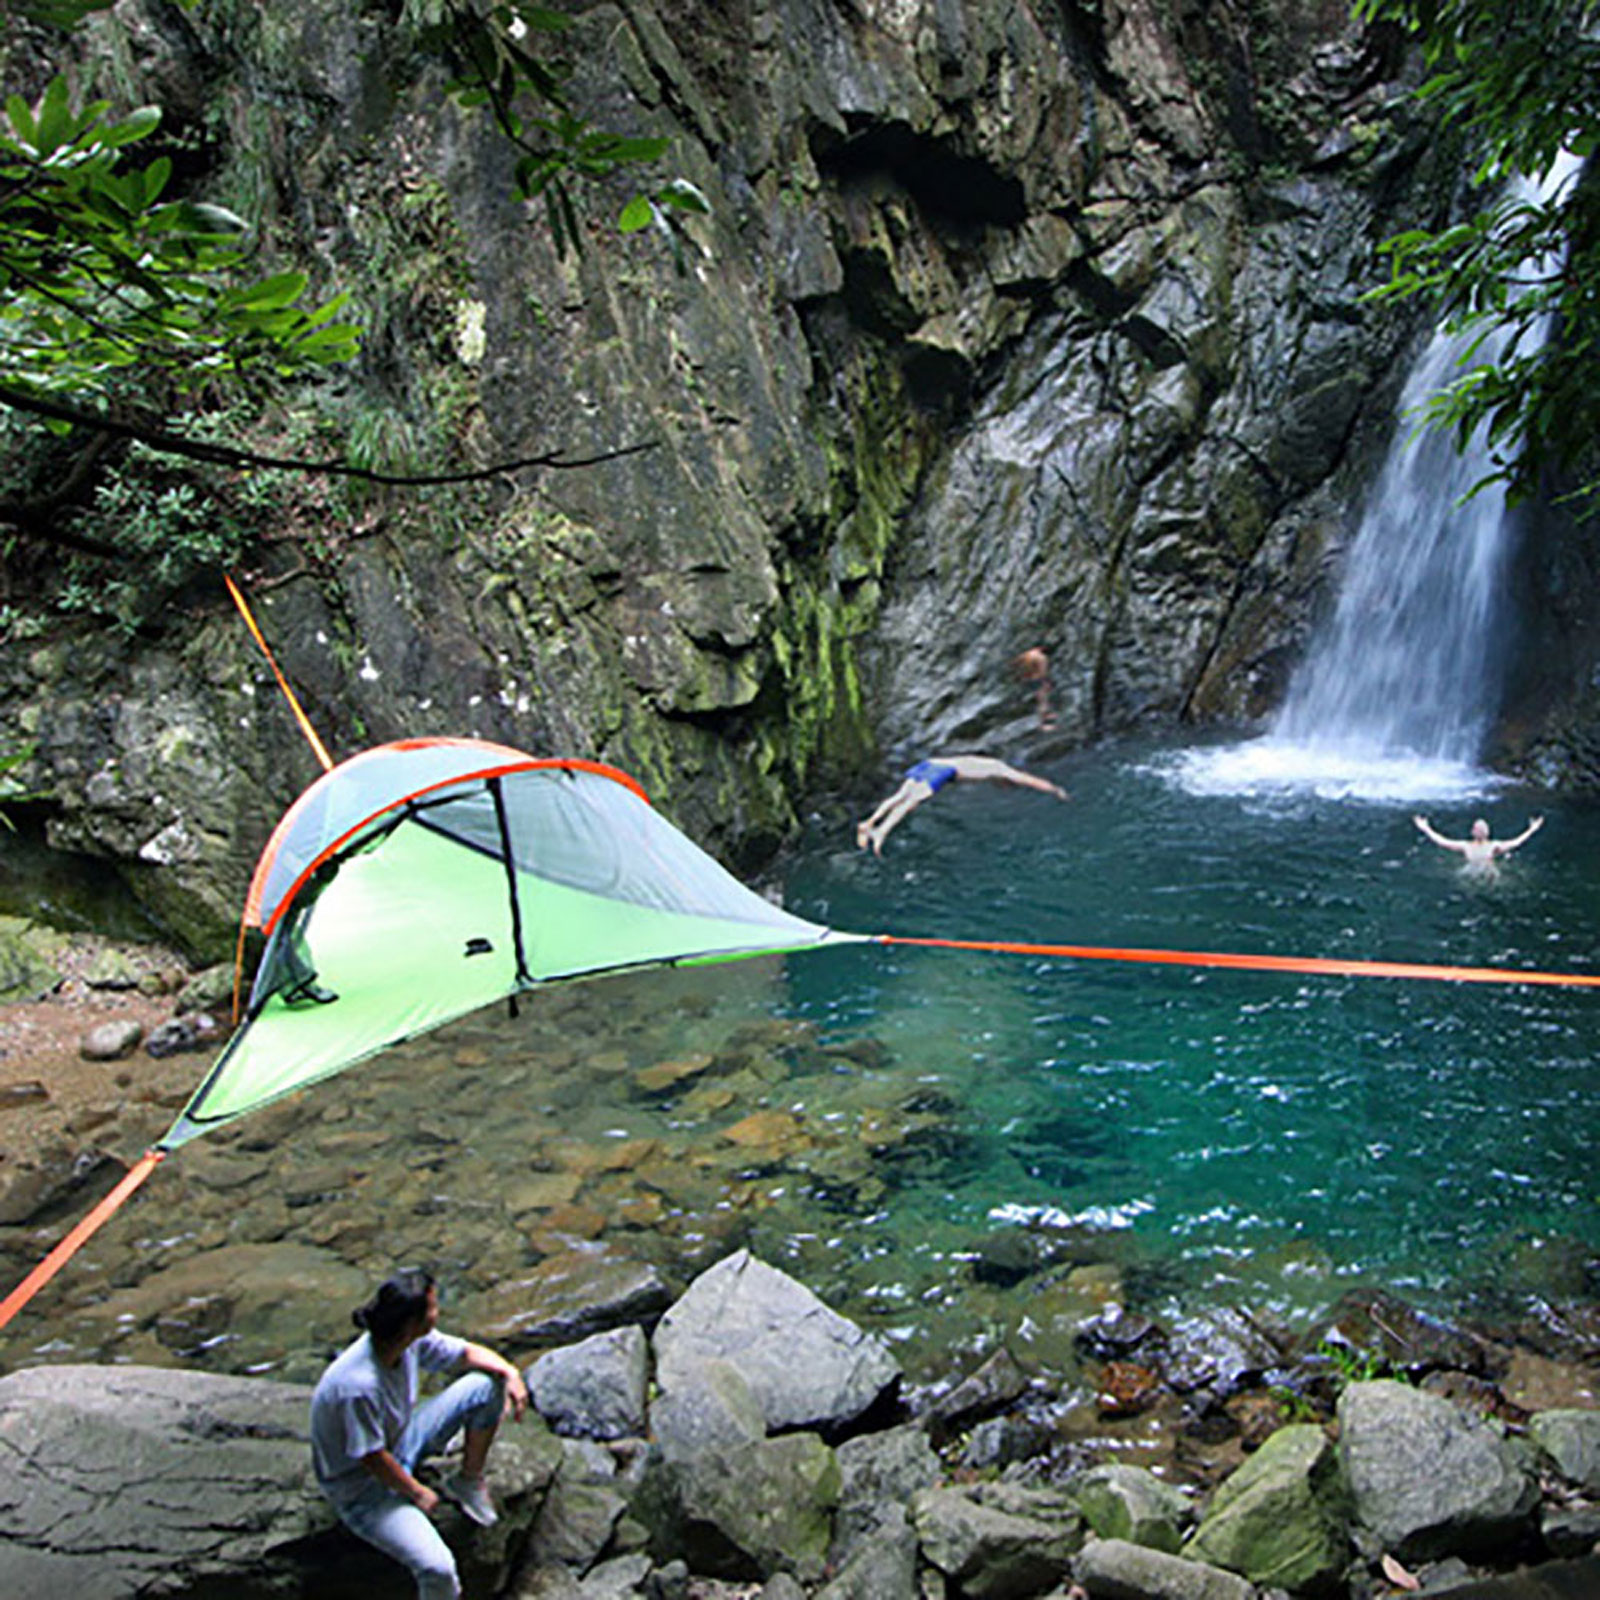 Picture 10 of 18; Picture 11 of 18 & Tentsile Connect Tree Camping Tent With Eno LED Twilight Camp ...